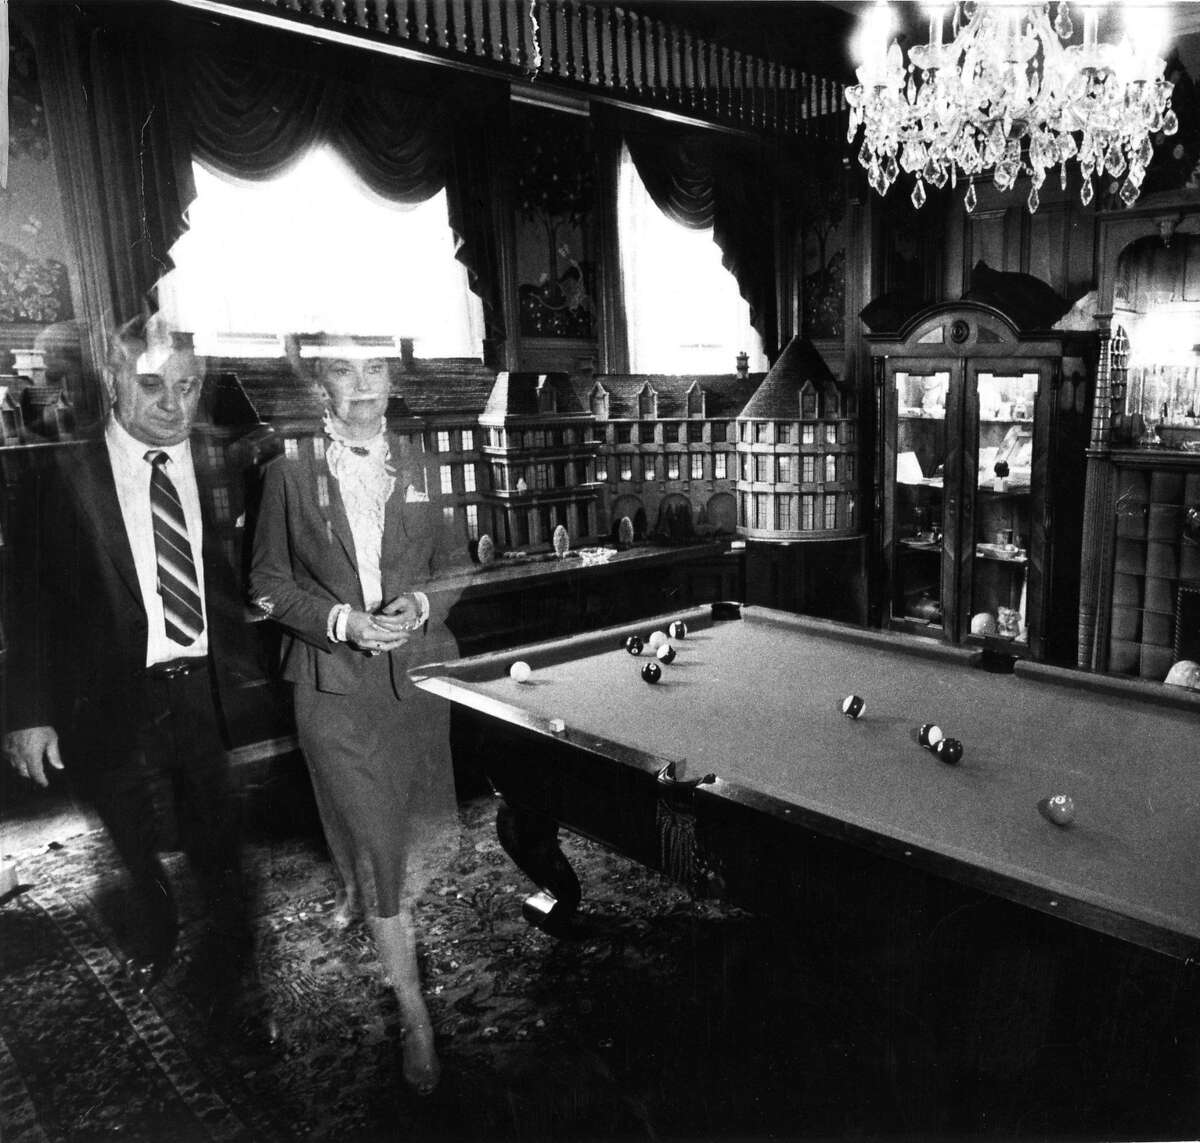 """Ed and Lorraine Warren at the Masions Hotel on Sacramento Street in S.F. Perhaps the most famous case investigated by the Warrens, the case known as the """"Amityville Horror"""" went on to launch its own multi-million dollar franchise before appearing in the second """"Conjuring"""" movie. George and Kathy Lutz claimed they were driven out of their Long Island home in 1975 by a violent paranormal entity. A year before the Lutz family moved into the home, it was reported that Ronald DeFeo Jr. shot and killed six family members in the house. The Warrens investigated the home and claimed that it was """"haunted."""" However, further investigations have revealed that the reported happenings in the home were mostly a hoax."""